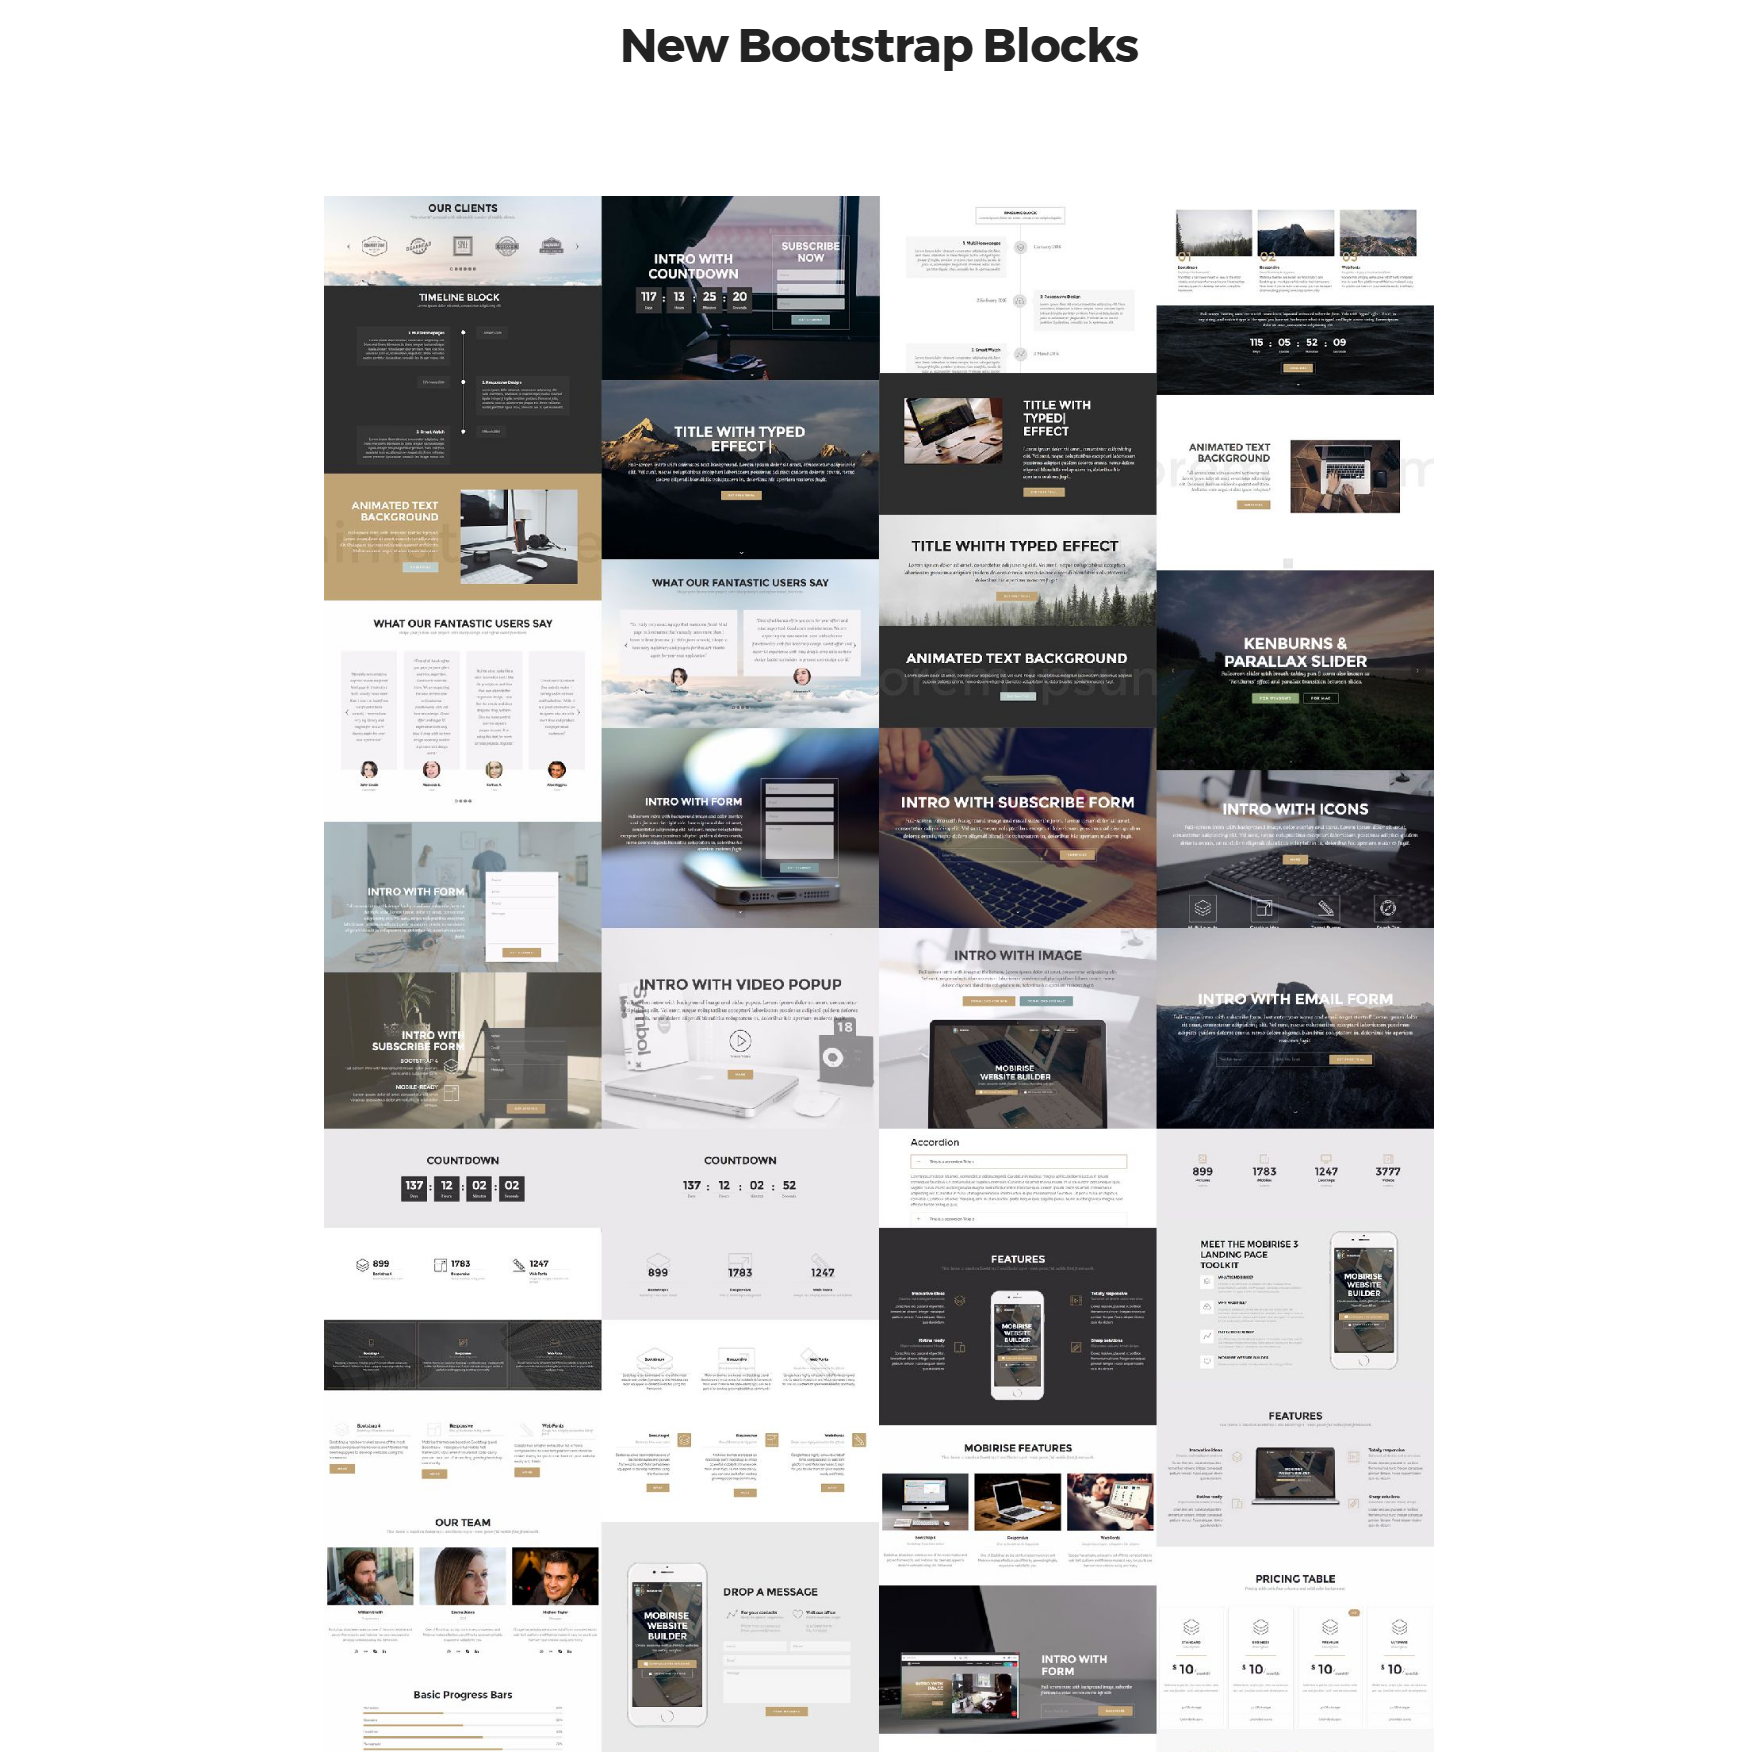 HTML Bootstrap 4 mobile-friendly blocks Templates